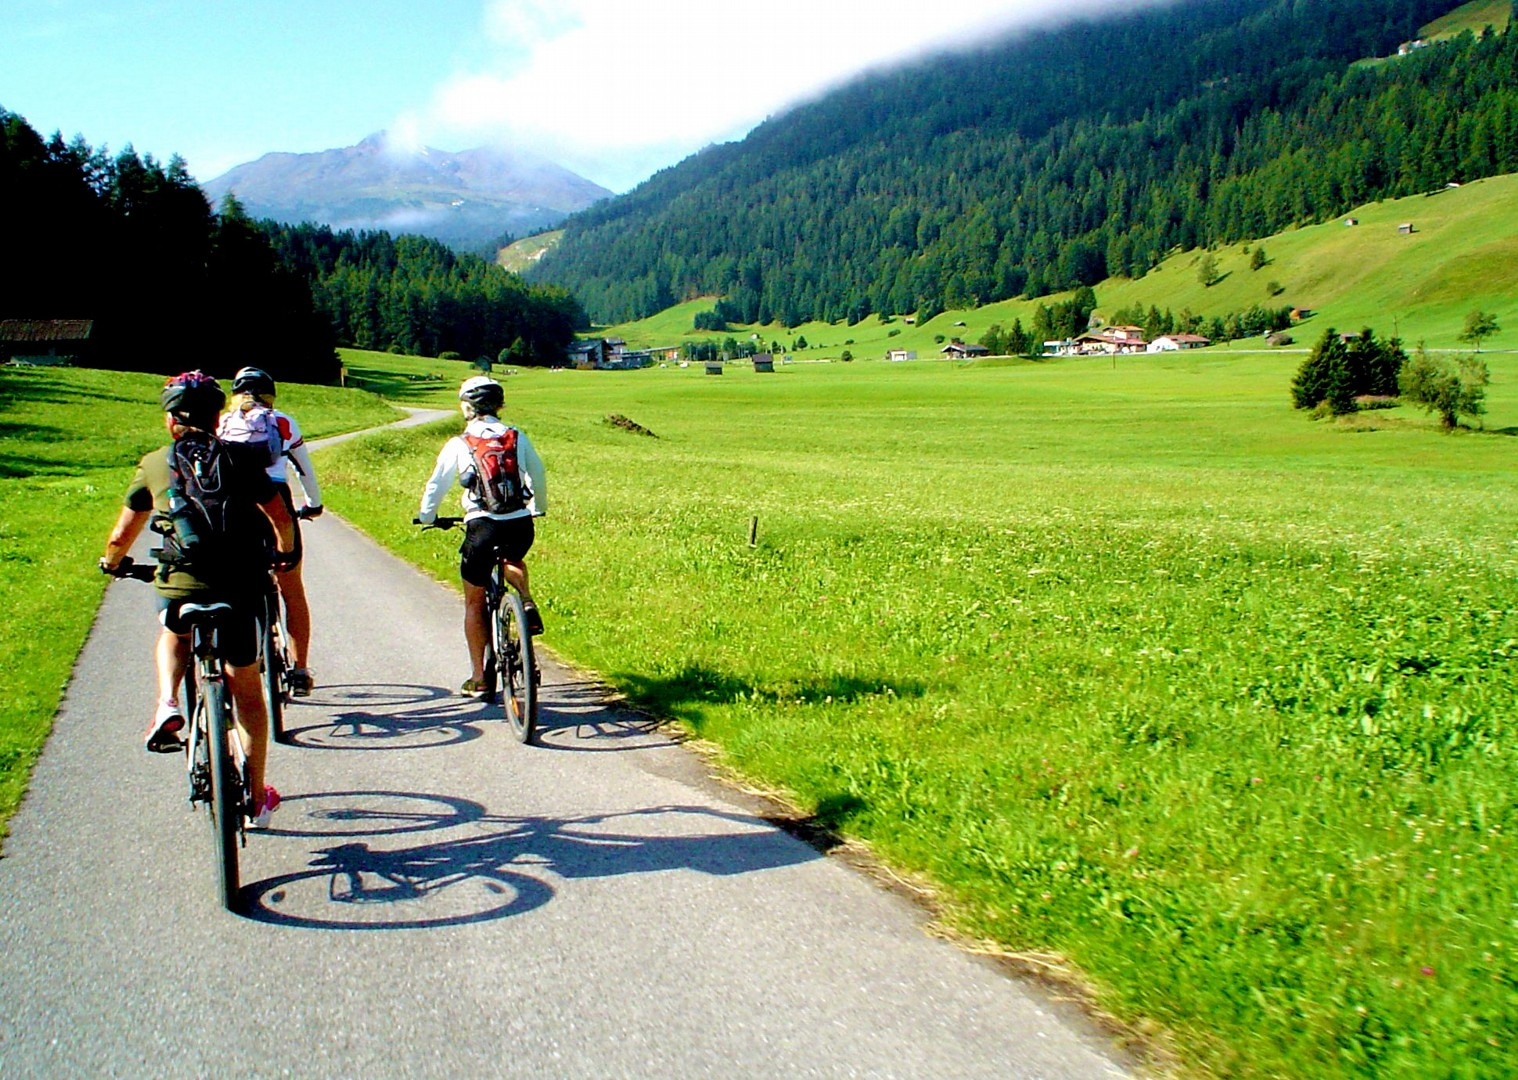 explore-austria-italy-guided-leisure-cycling.jpg - Austria and Italy - La Via Claudia - Guided Leisure Cycling Holiday - Leisure Cycling